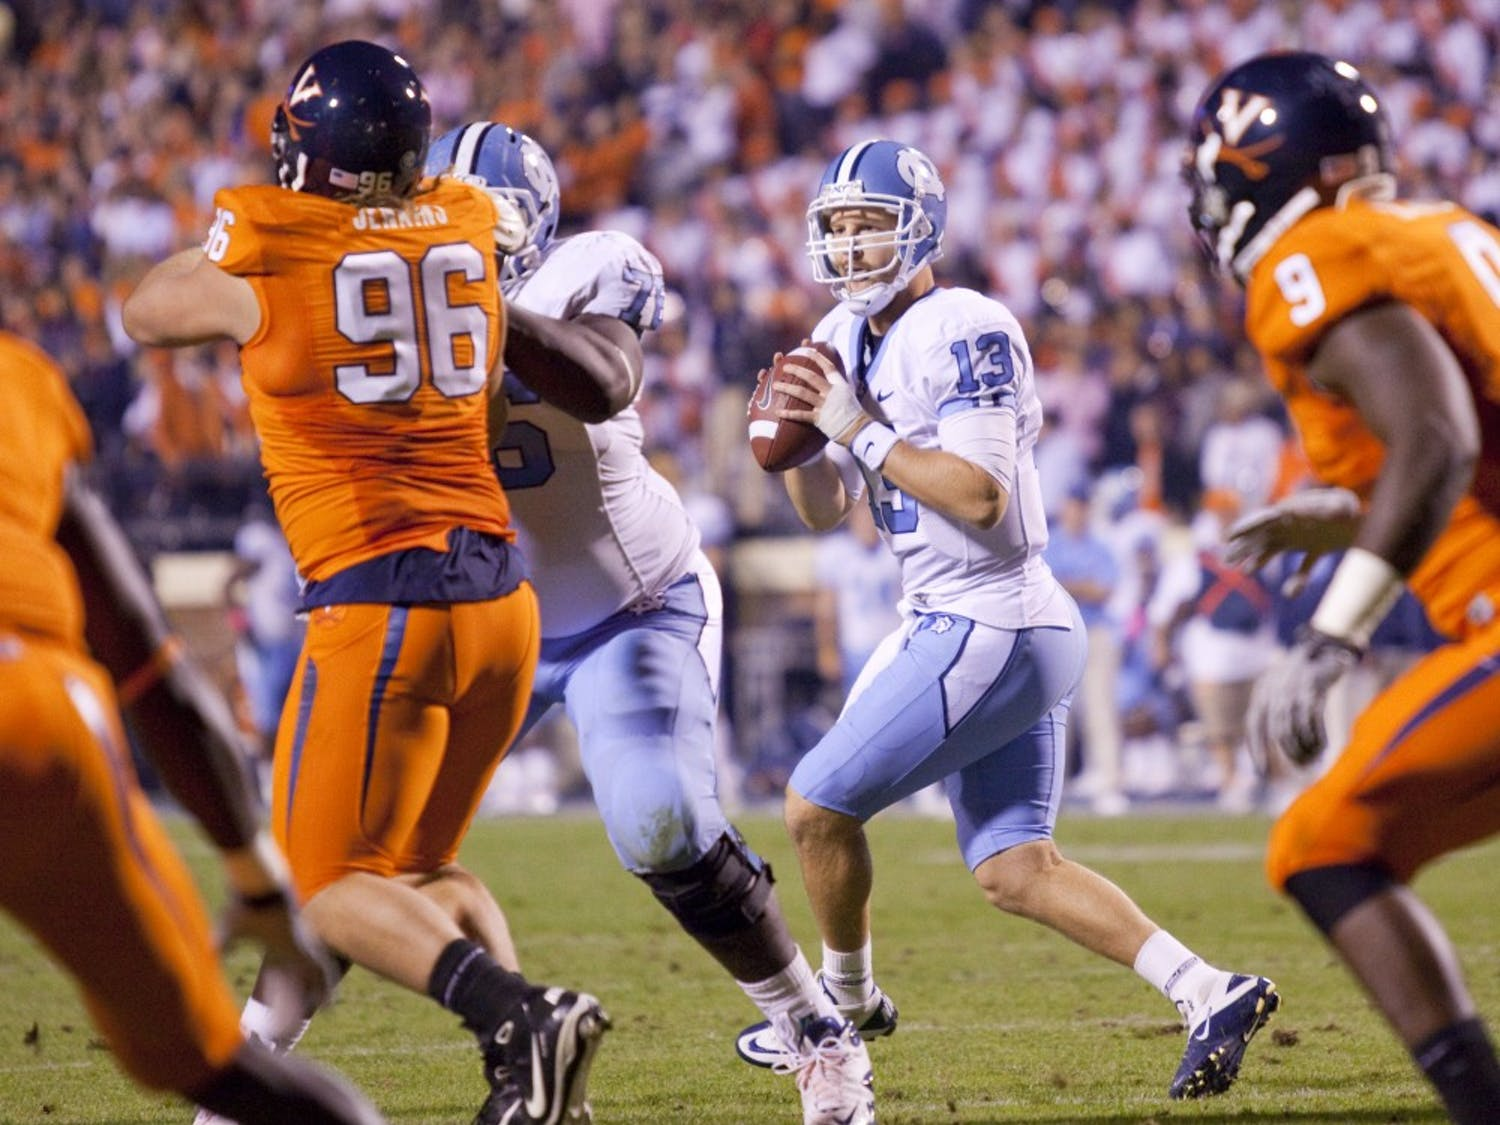 Senior quarterback T.J. Yates passed for 325 yards in the Tar Heels' 44-10 victory over Virginia.